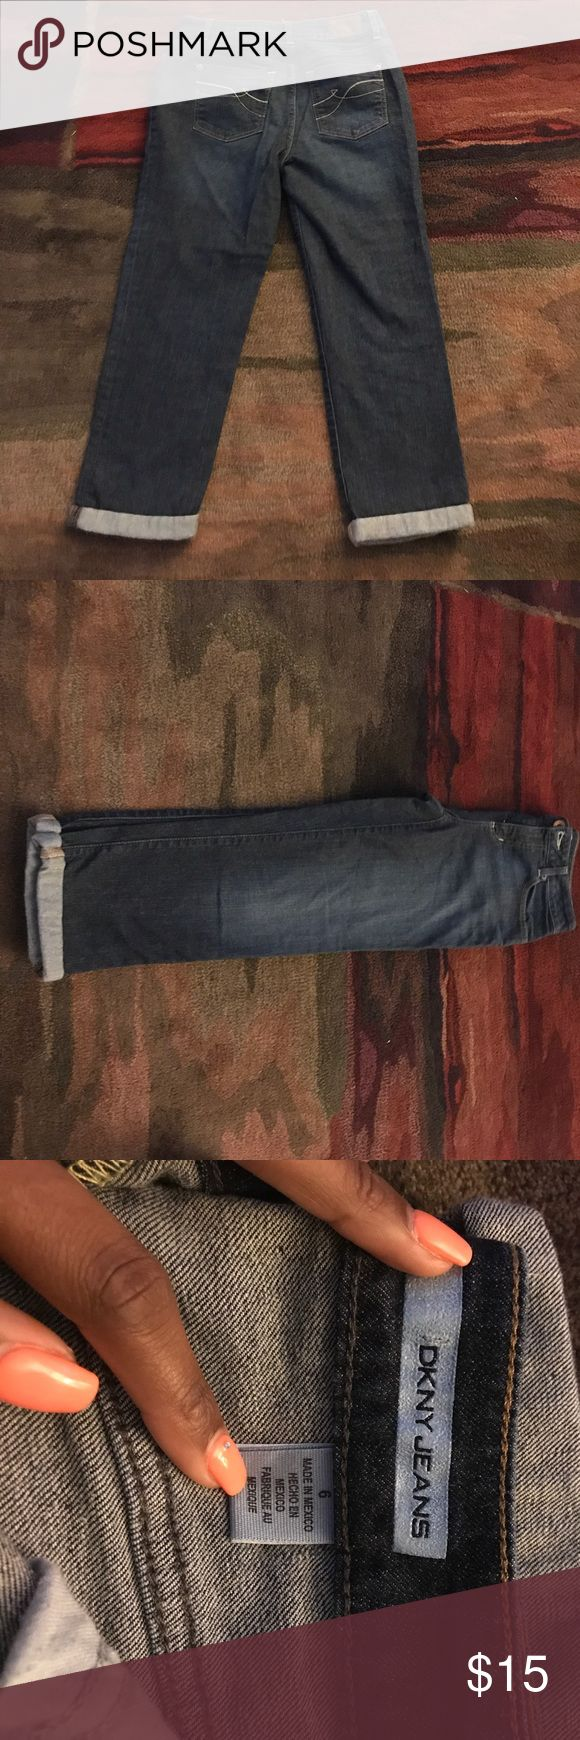 DKNY Women's Capri Jeans. Size 6 DKNY Women's Capri Jeans. Size 6. In Great condition. DKNYC Jeans Ankle & Cropped